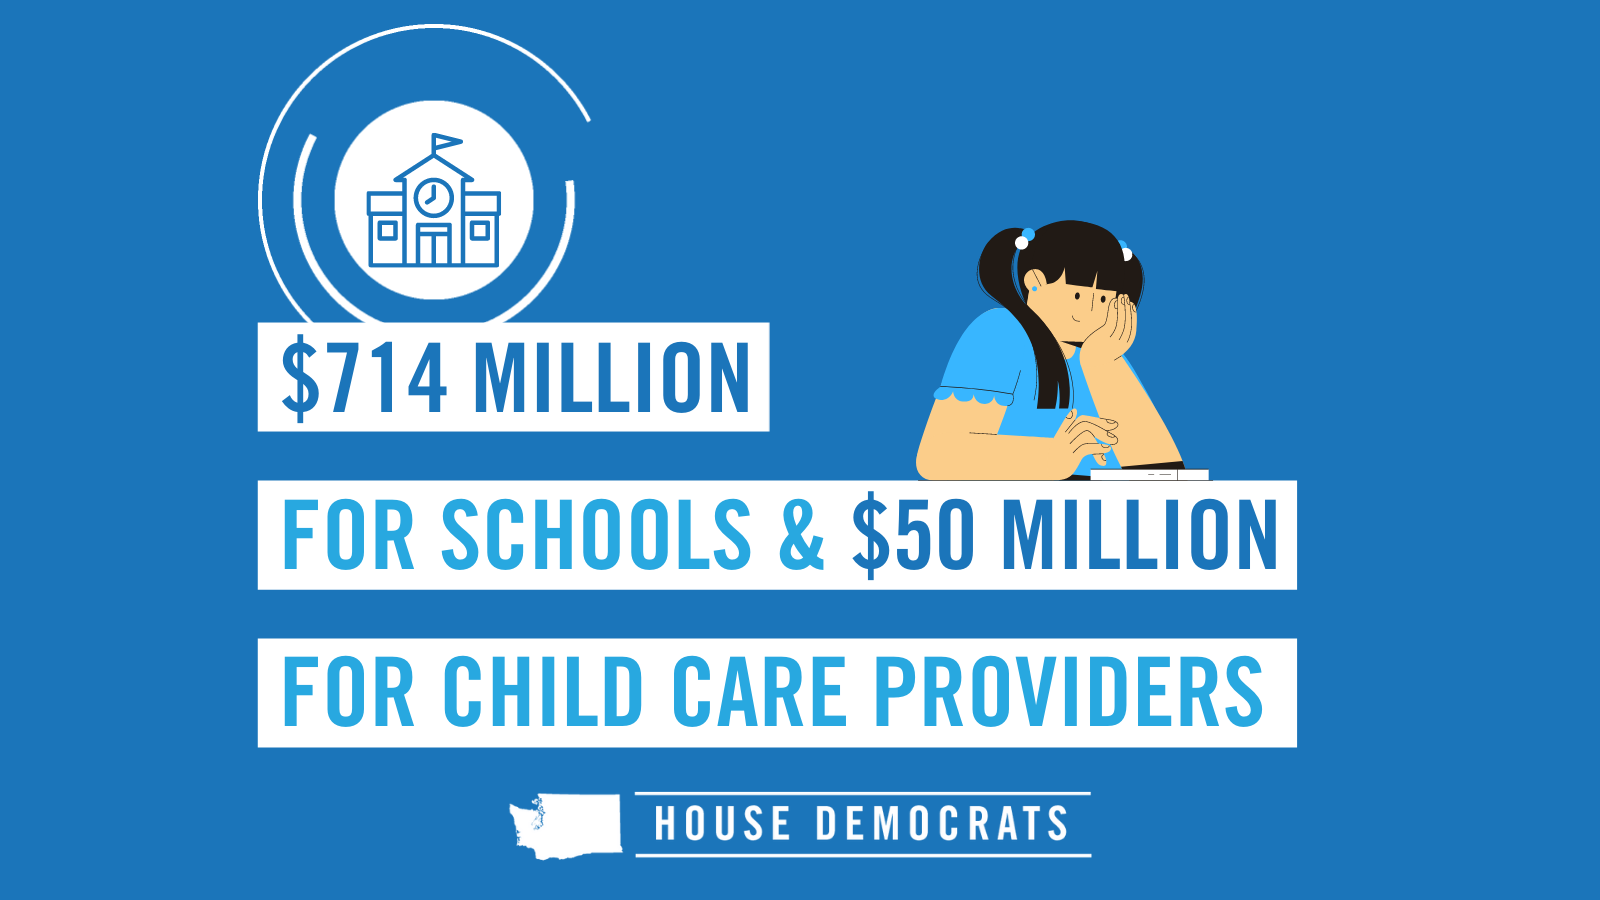 Slide that says $714 million for schools & $50 million for child care providers